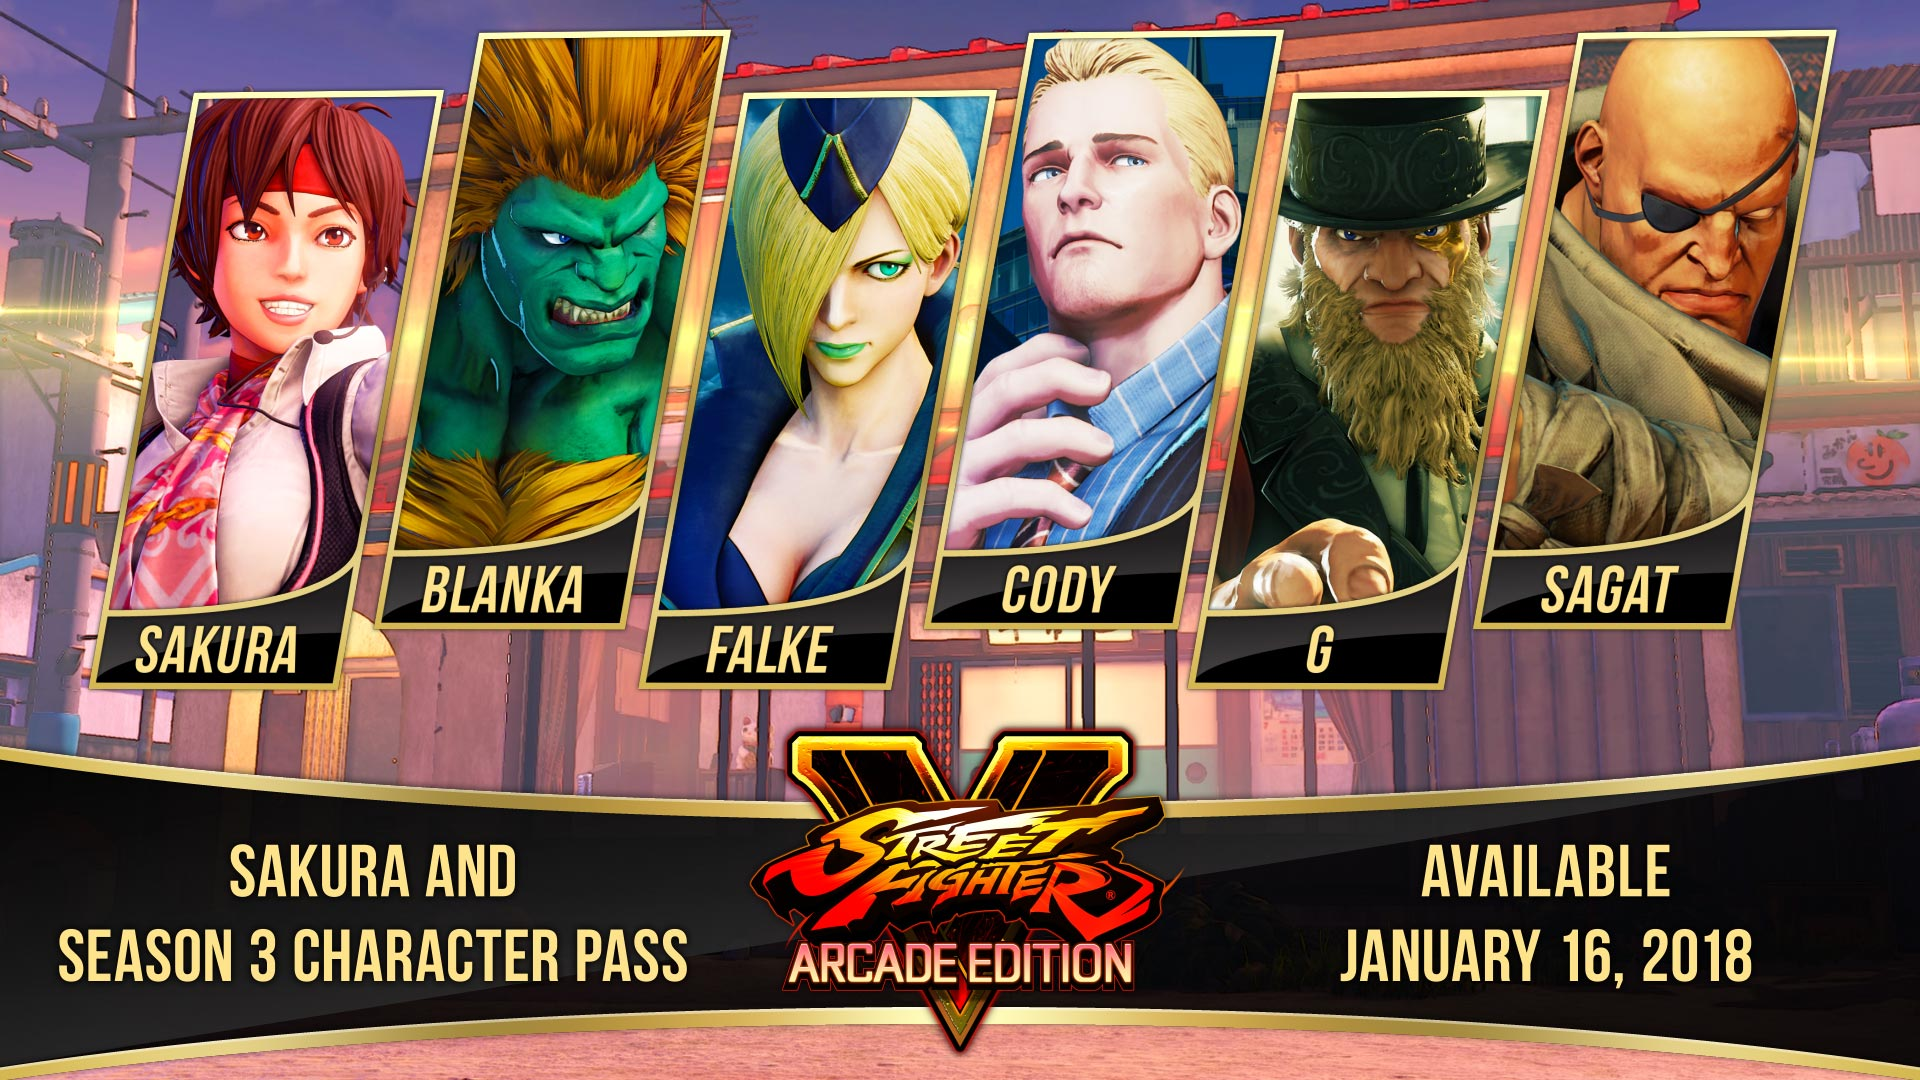 Street Fighter 5 Arcade Edition Season 3 characters 11 out of 11 image gallery